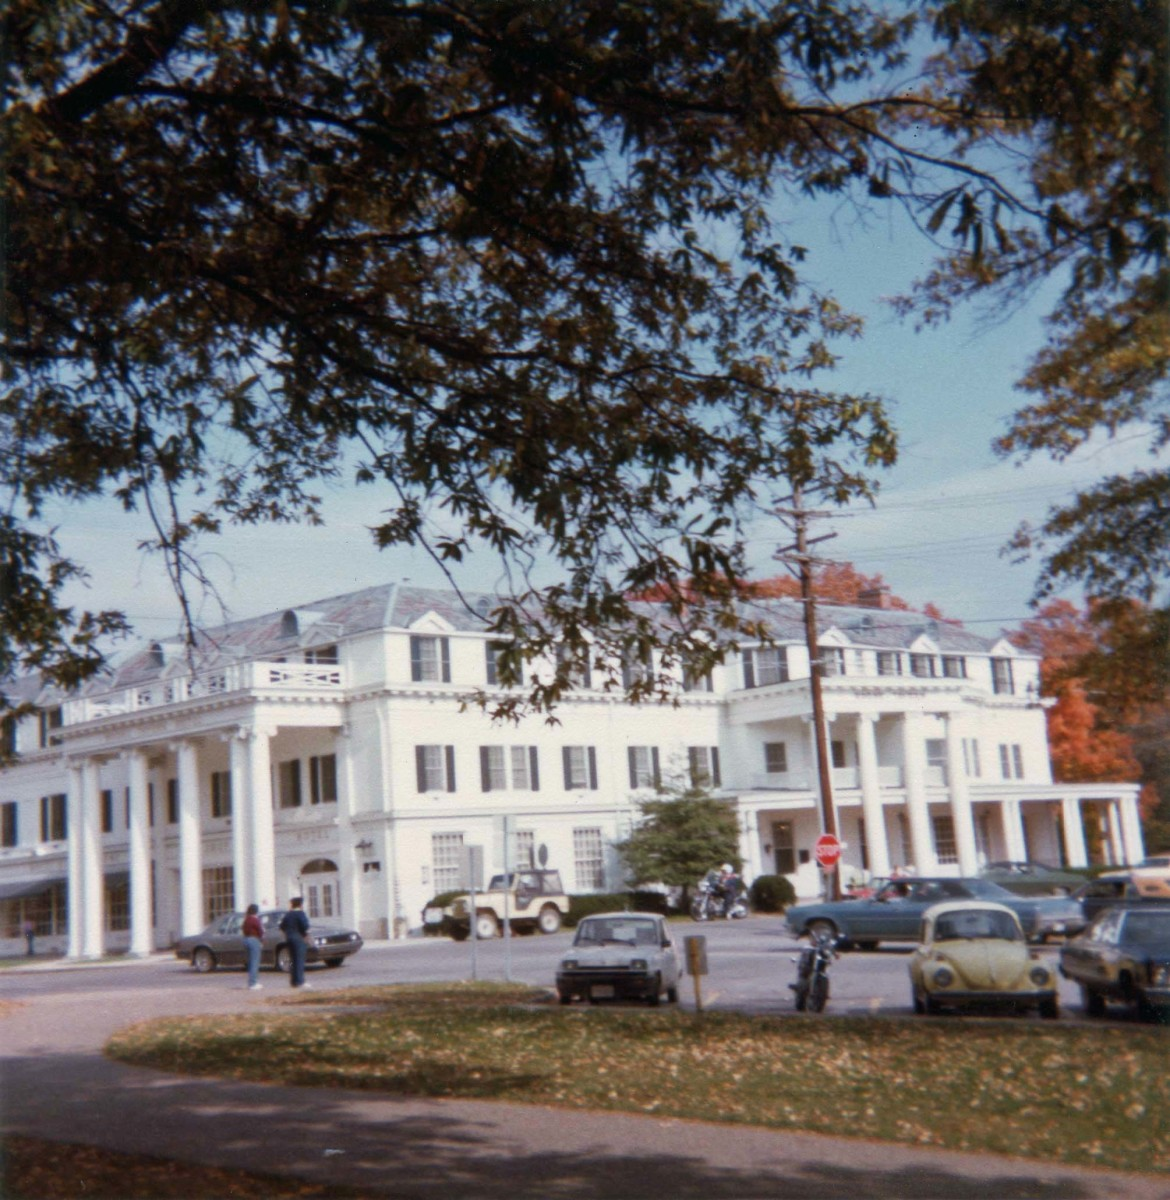 Boone Tavern, a historic restaurant and hotel operated by Berea College students. I have been surprised over the years by the number of people I have run across who are familiar with this attraction.